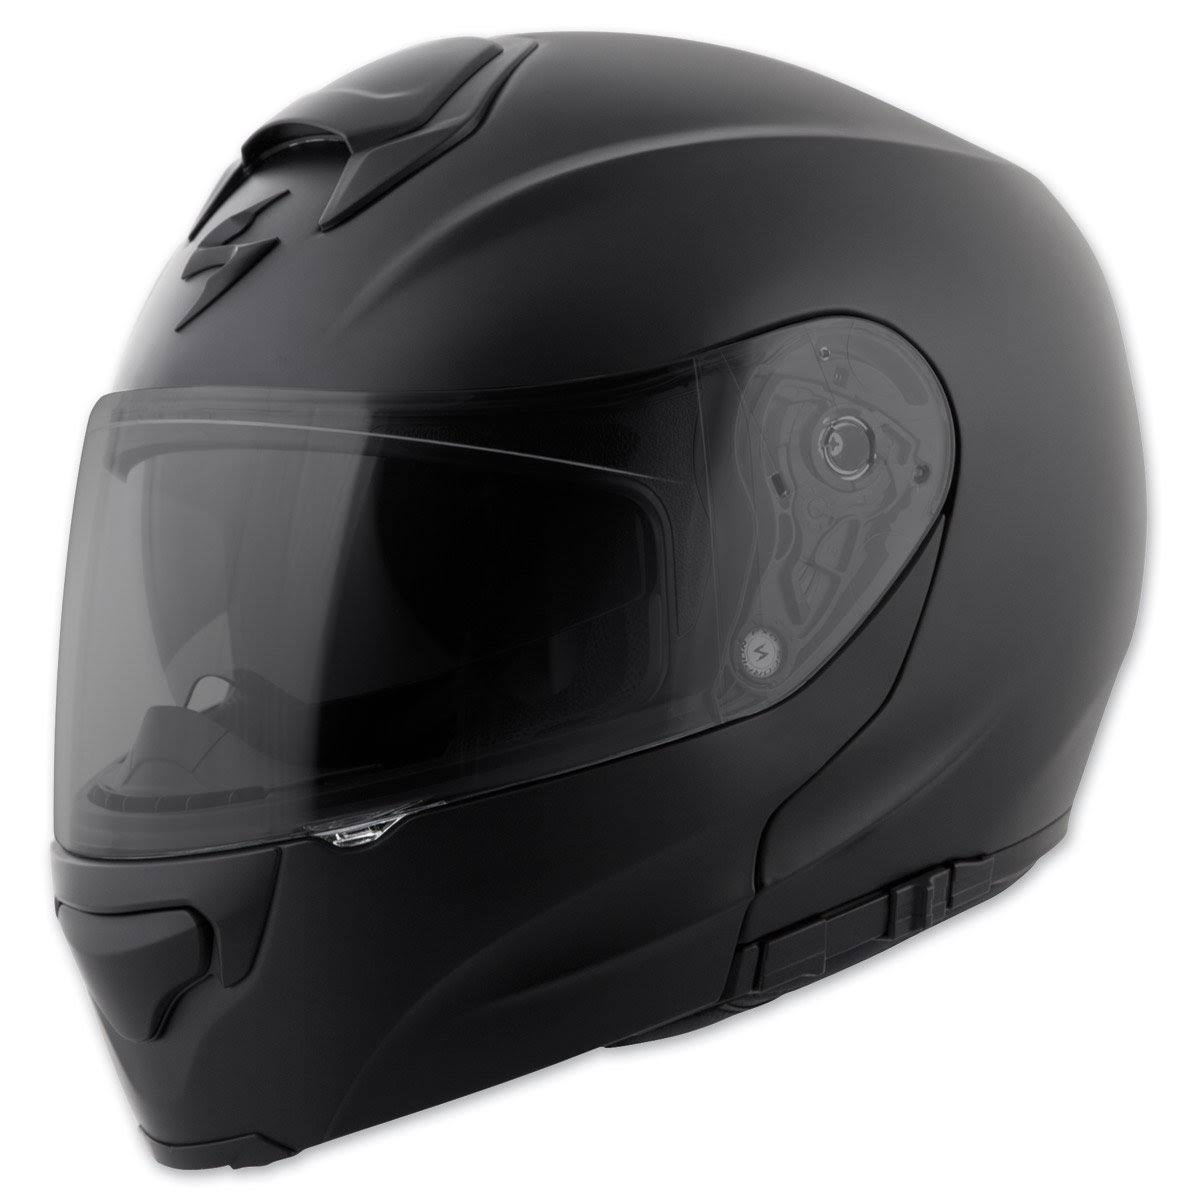 Scorpion Gt3000 Solids Modular Motorcycle Helmet - Matte Black, Small